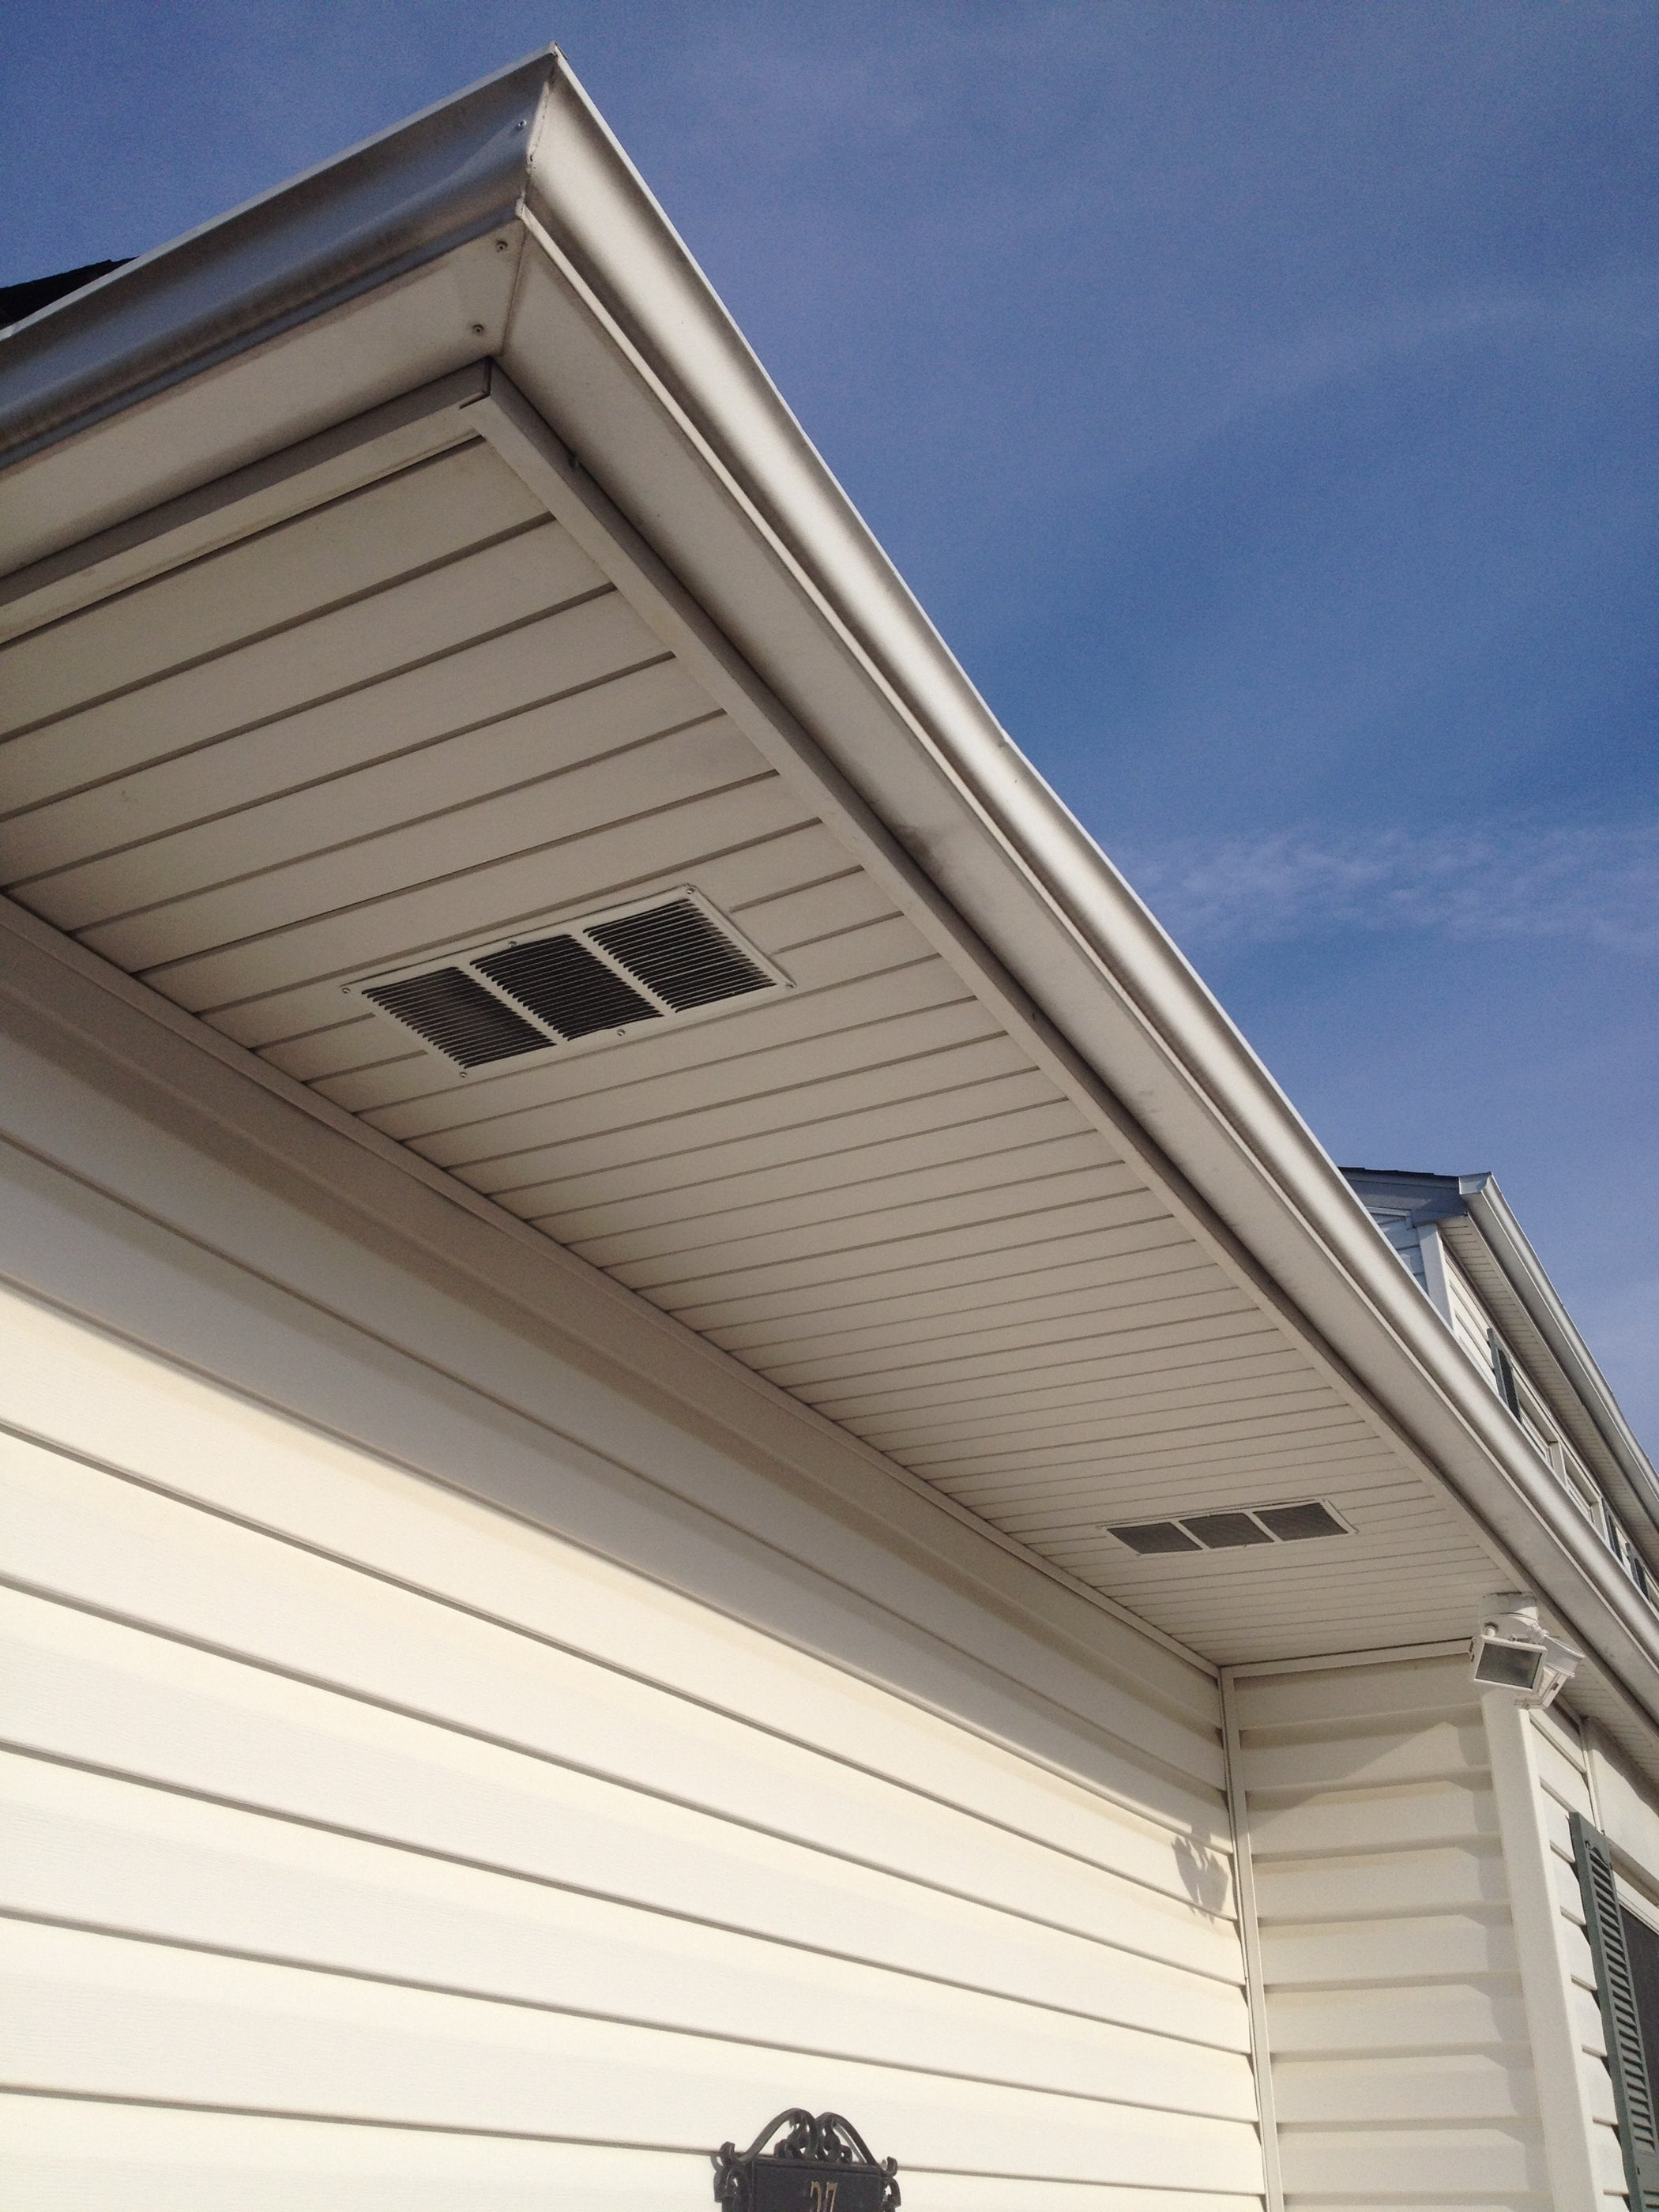 Simple Soffit Vent Installation 7 Steps Instructables